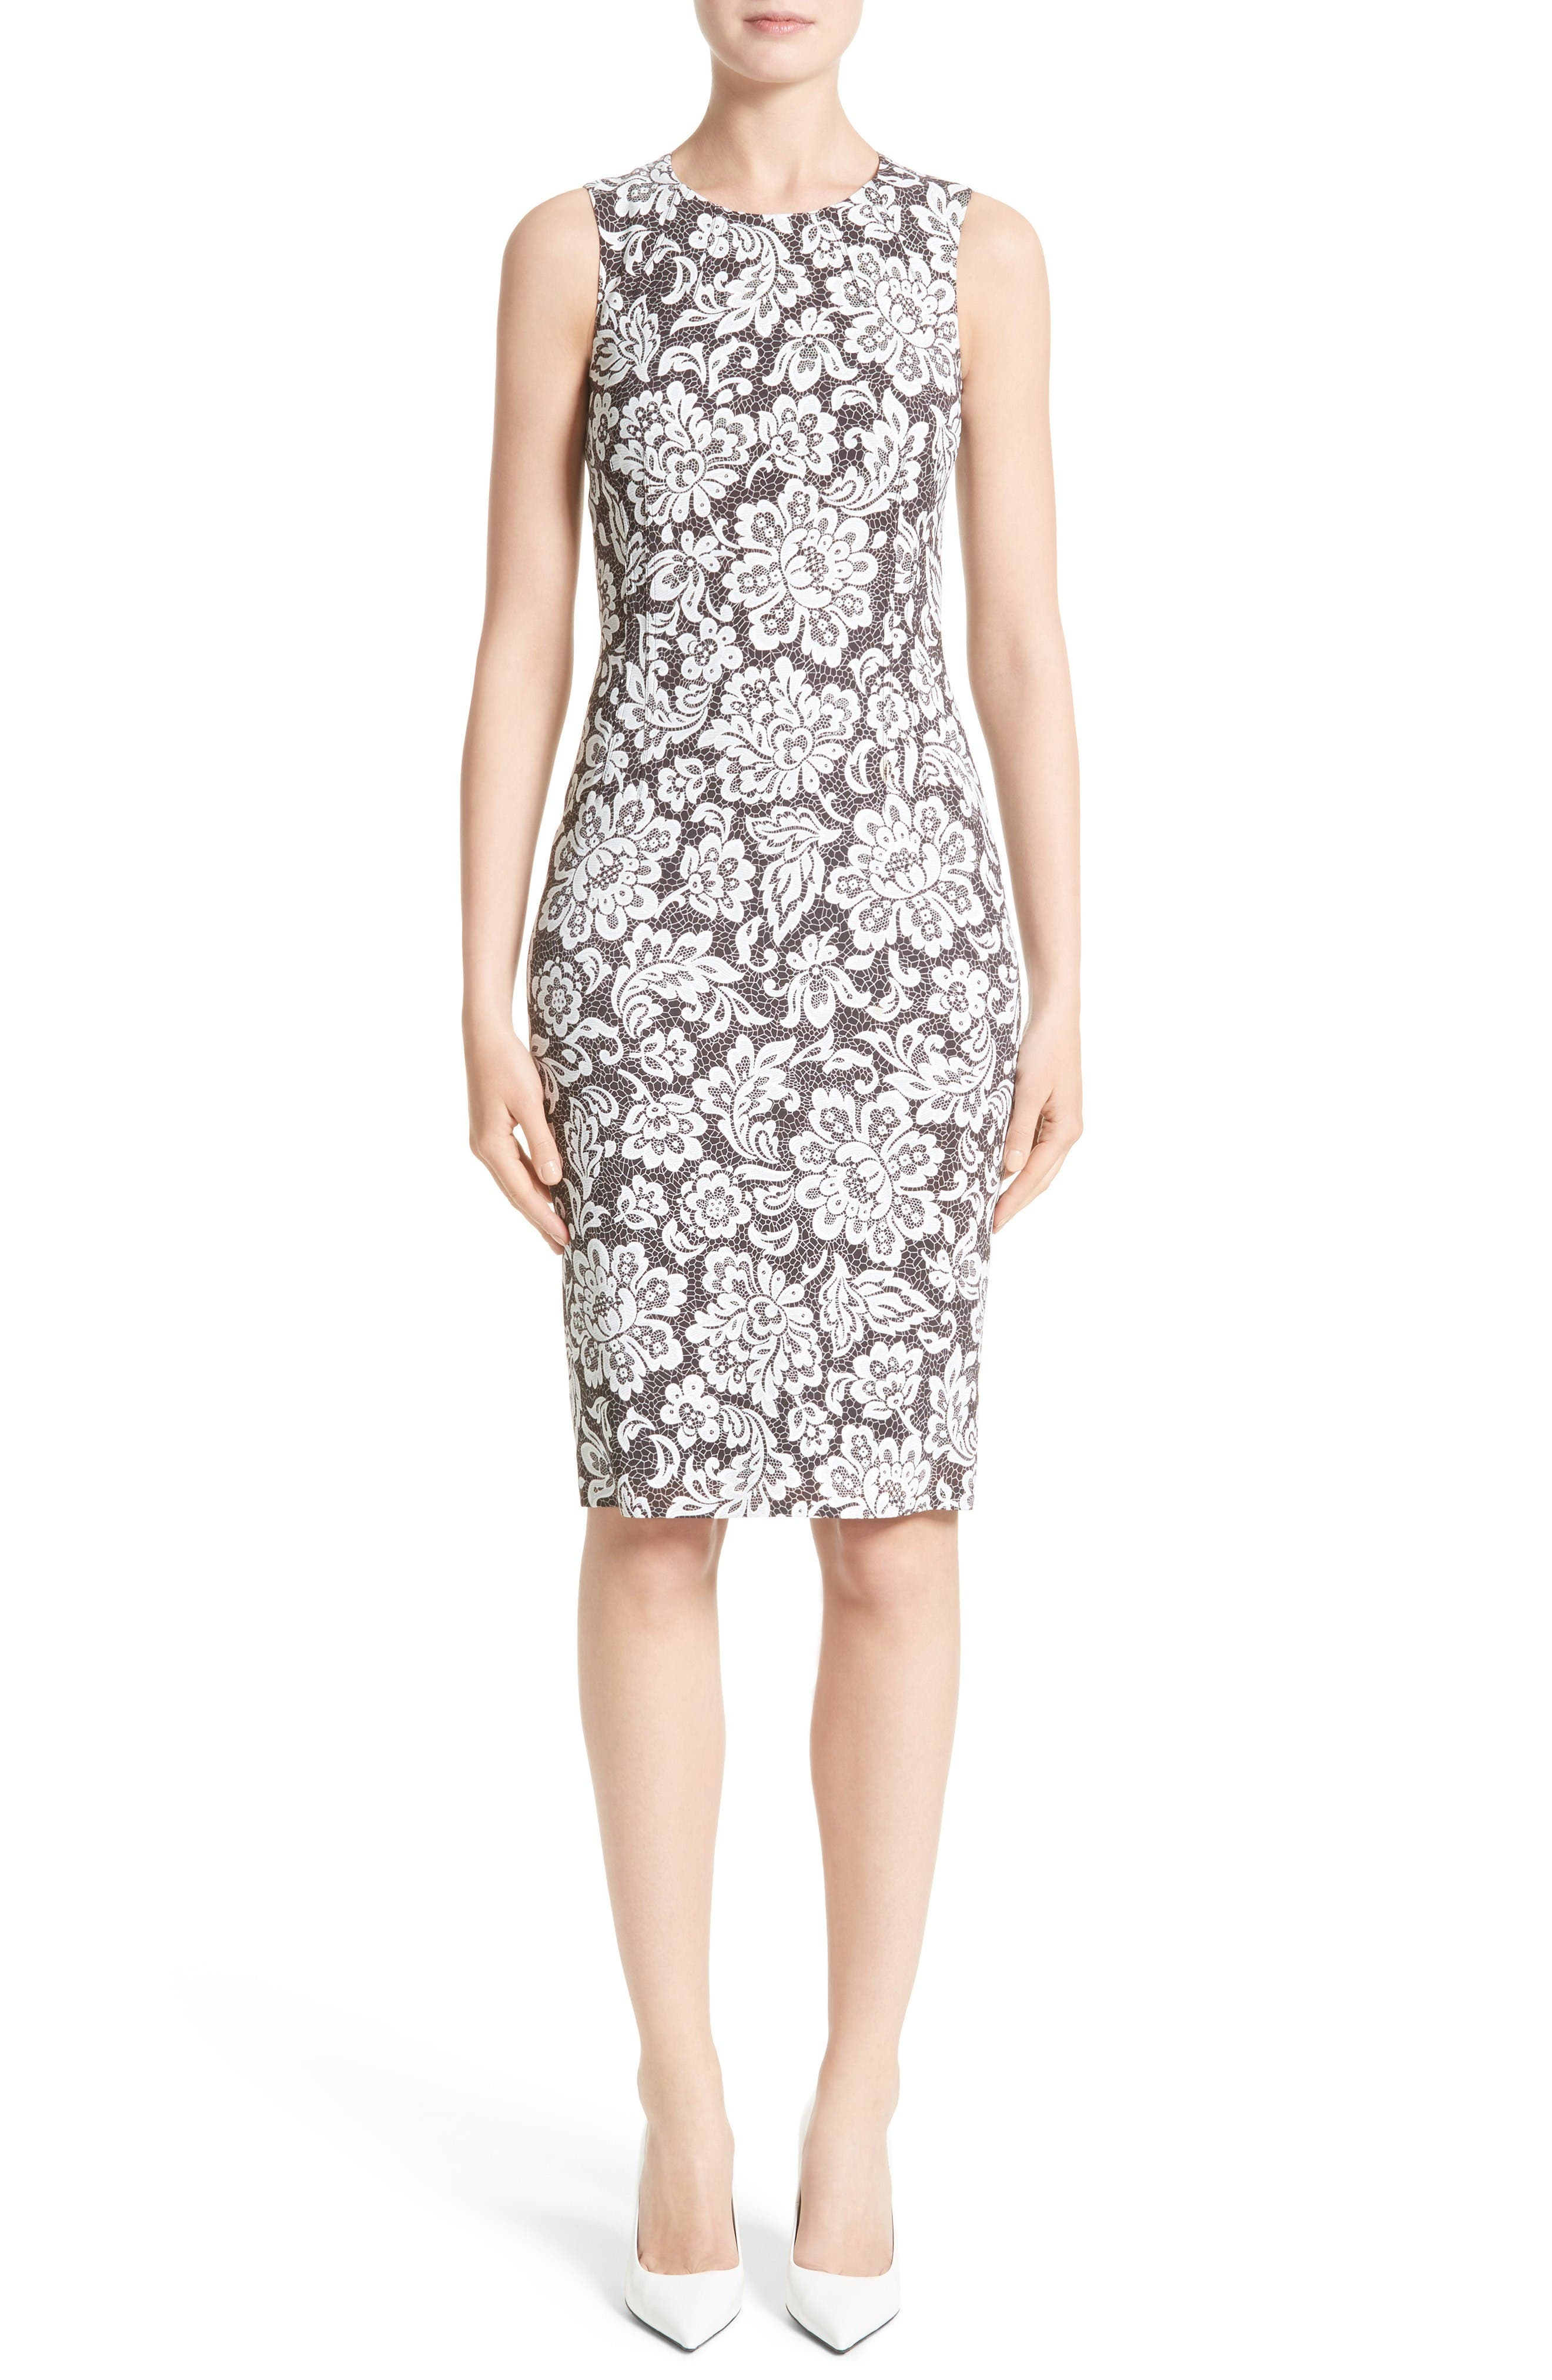 Alternate Image 1 Selected - Michael Kors Stretch Cady Lace Print Sheath Dress